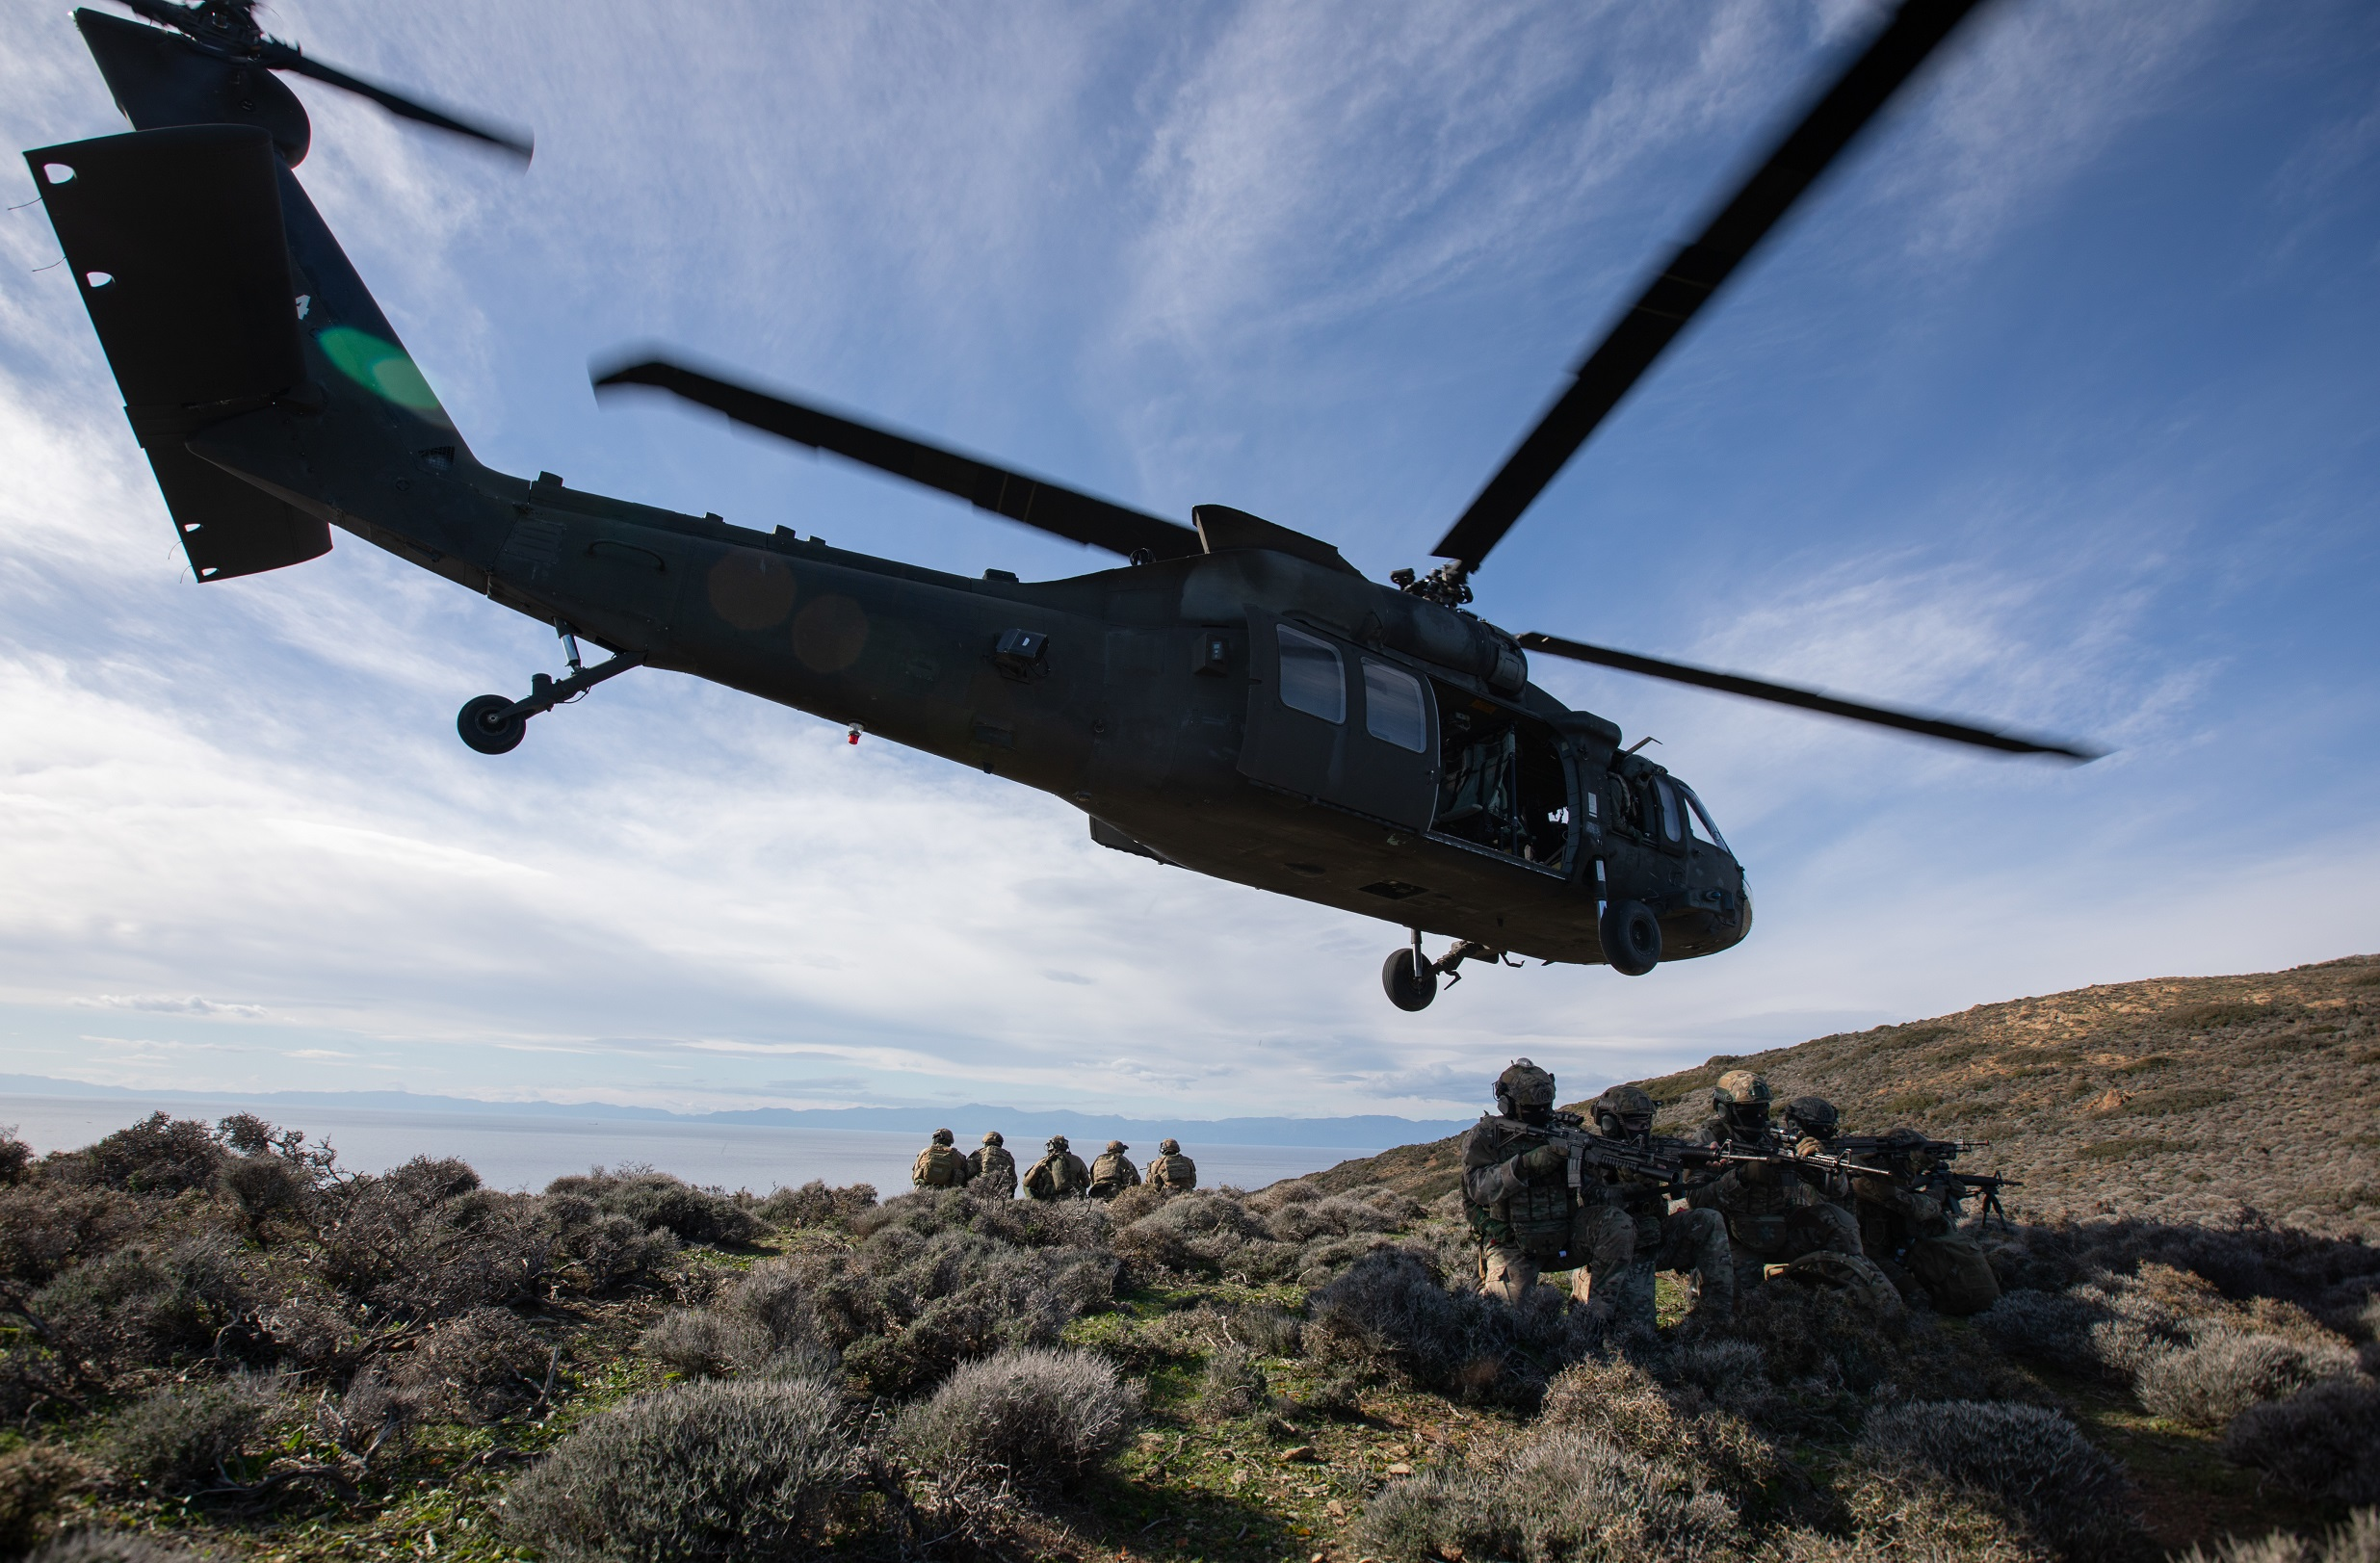 U.S. Army helicopters participate in unique joint exercise in Greece